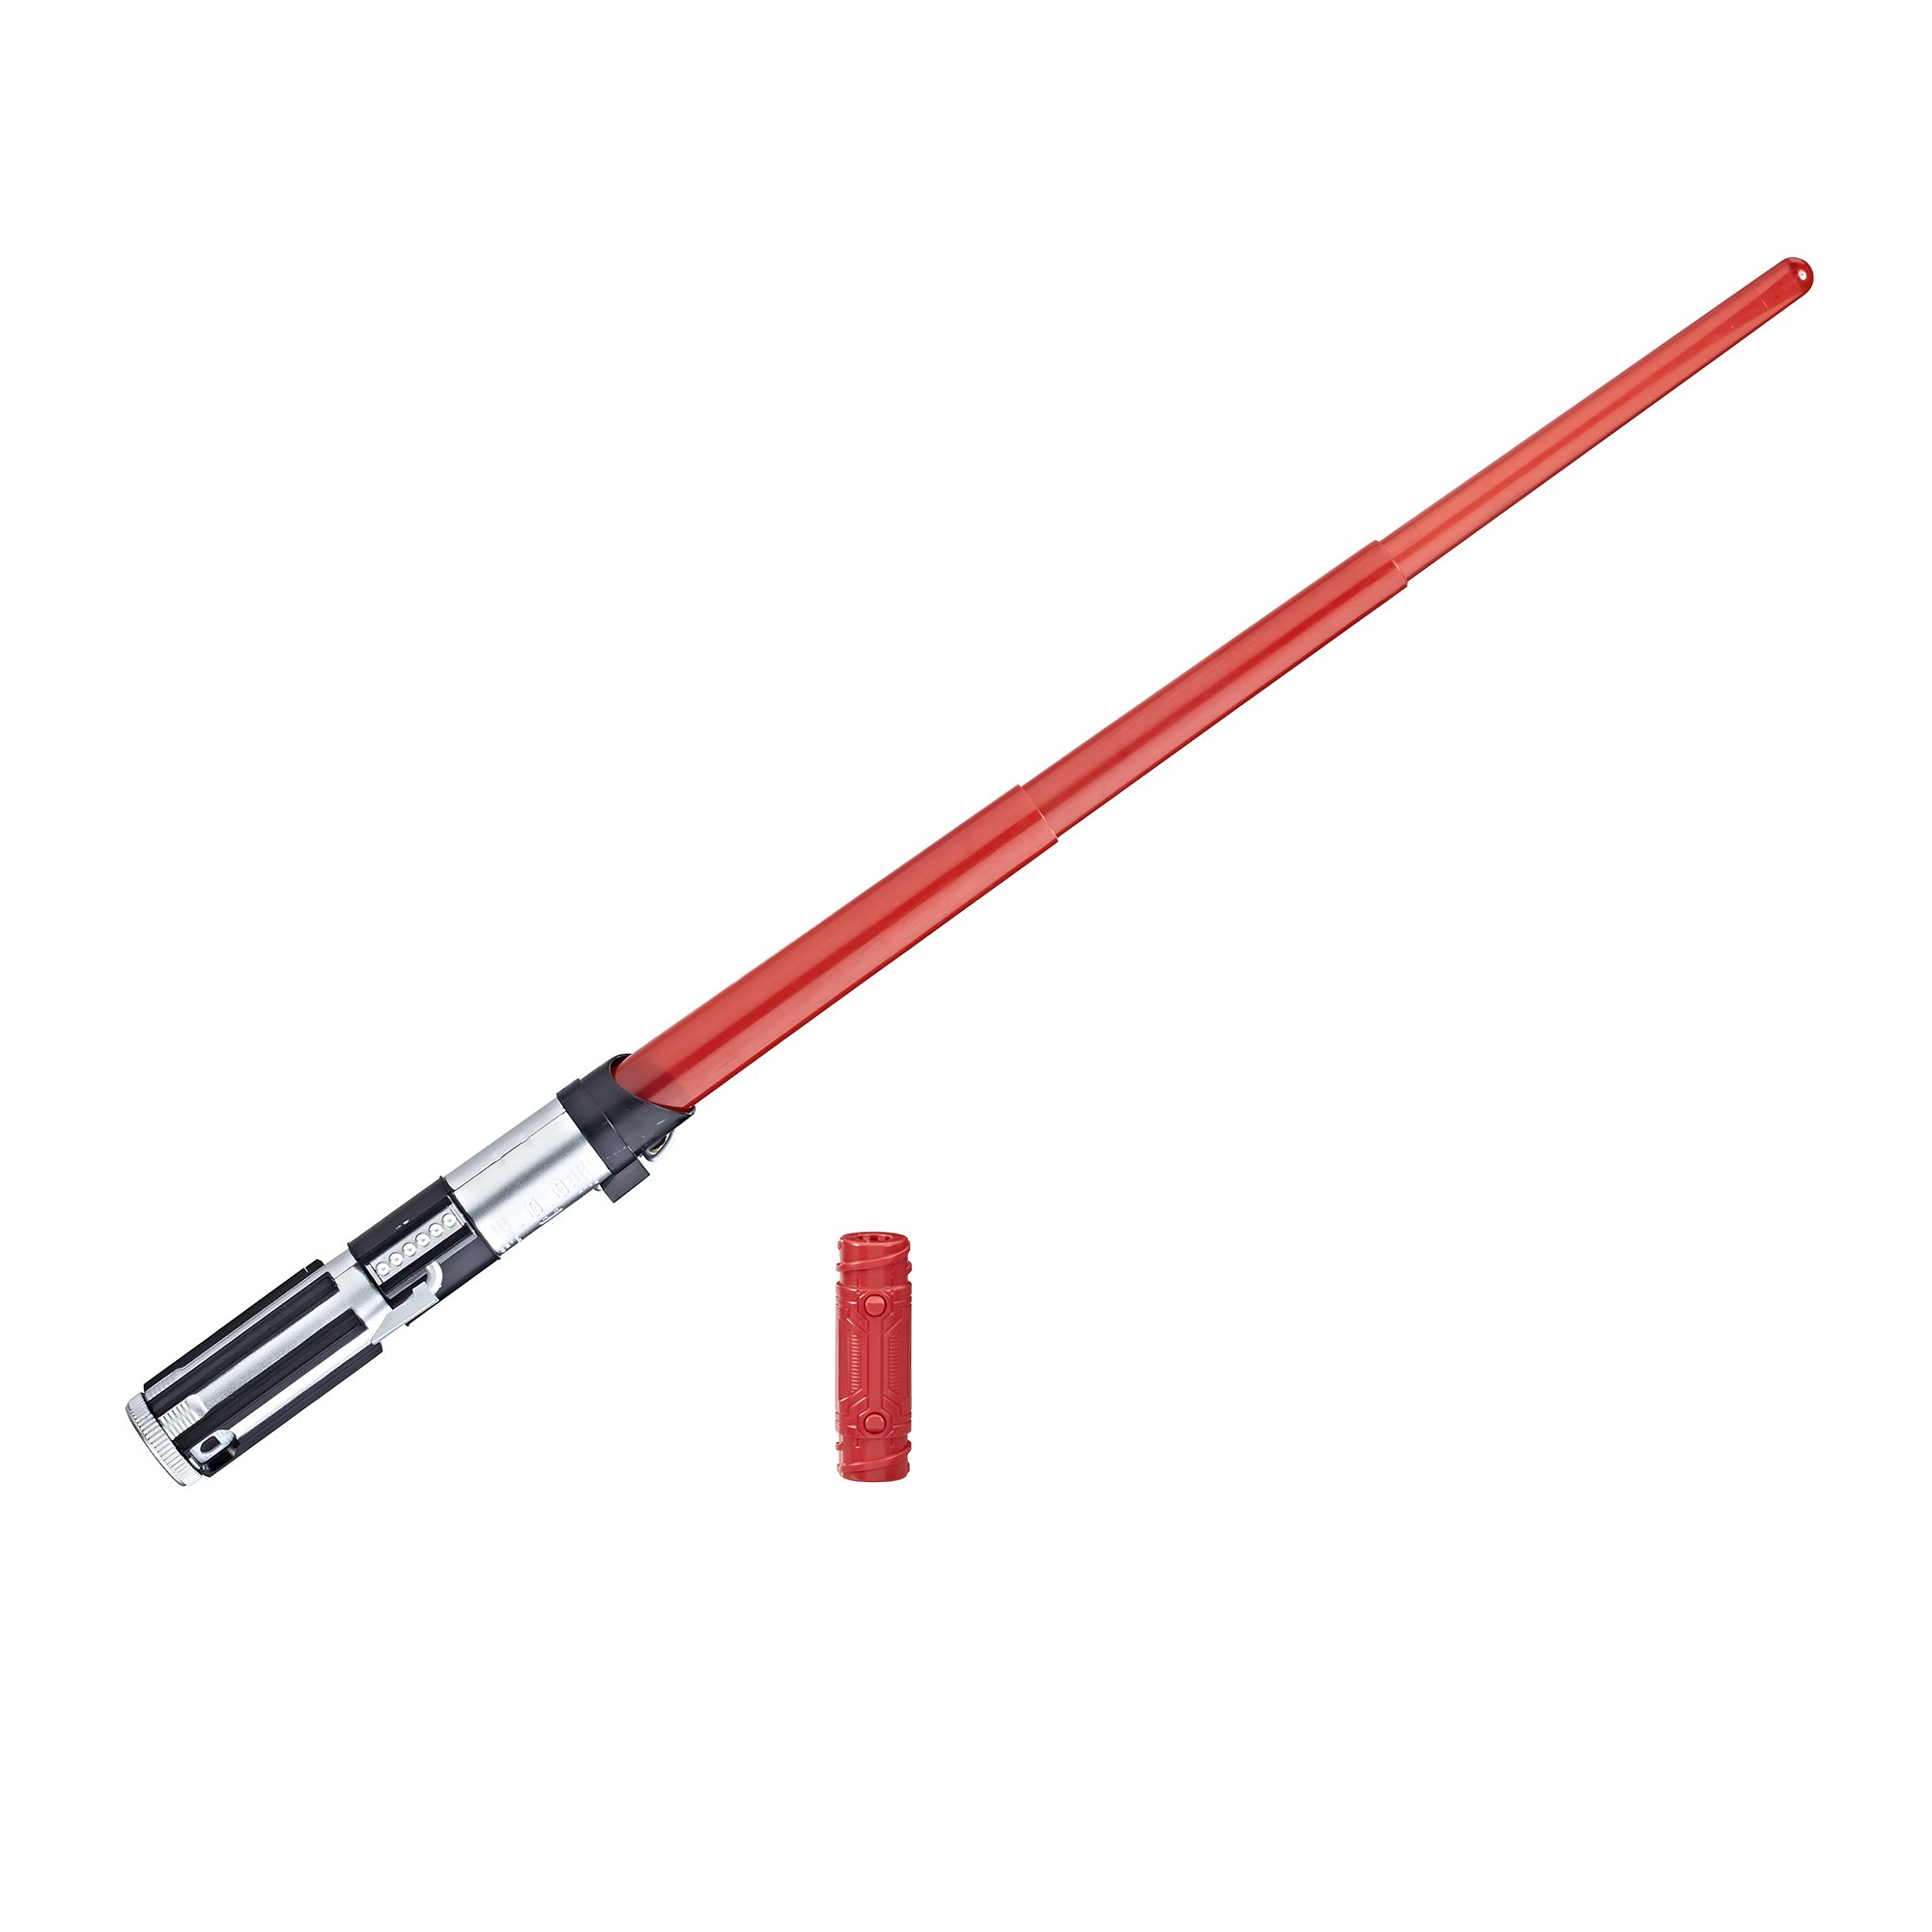 Star Wars: A New Hope Darth Vader Electronic Lightsaber by Star Wars